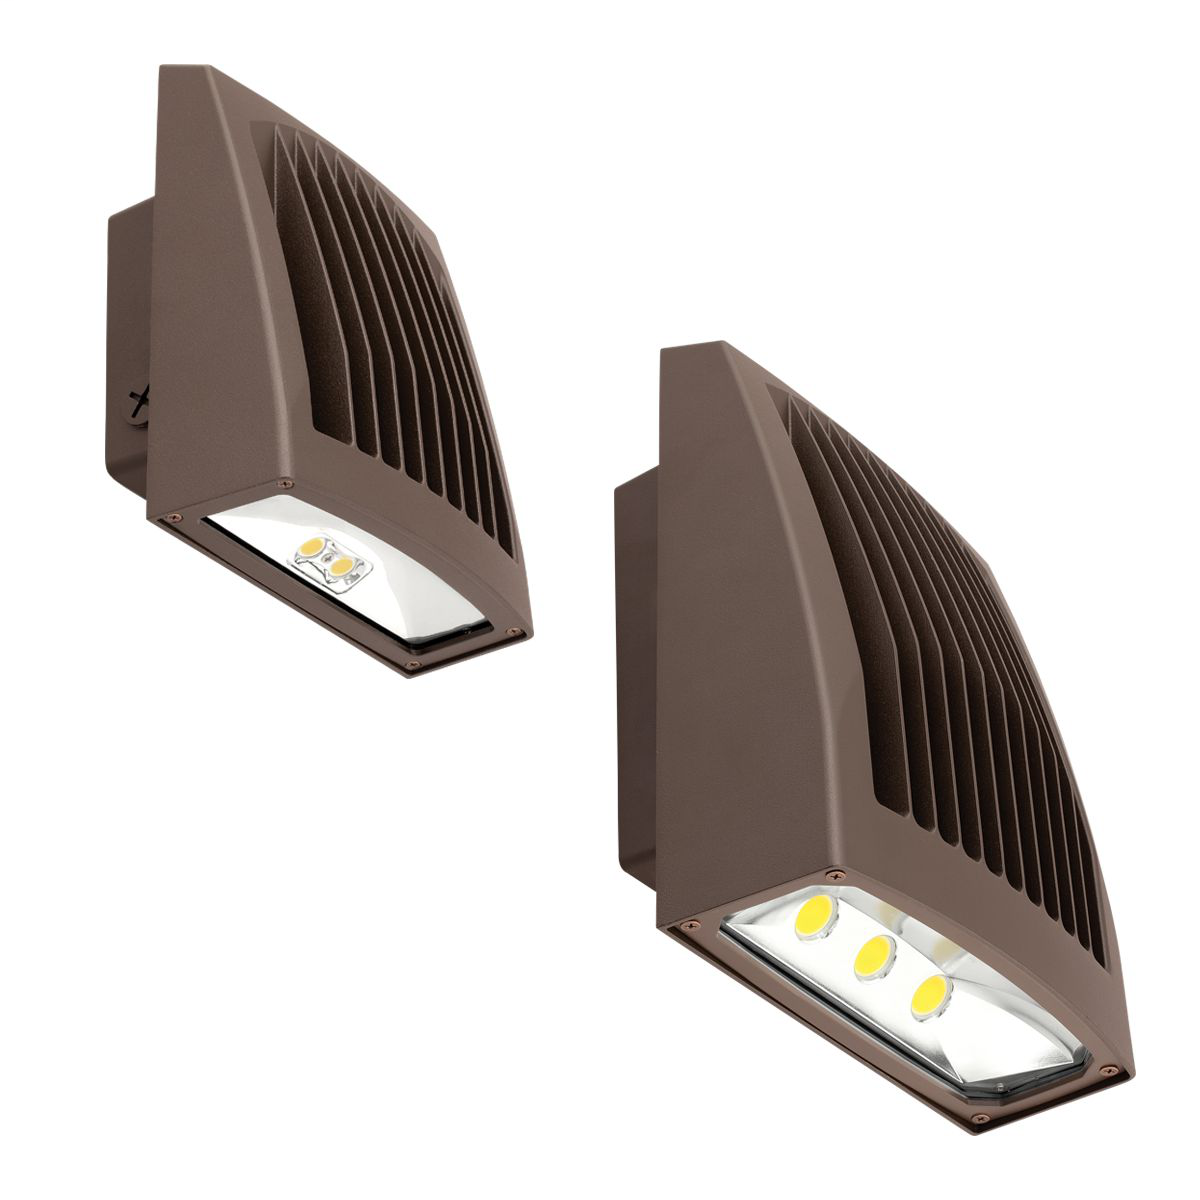 HUBBELL LIGHTING OUTDOOR,SG2-80-4K-PCU,WALL PACK LED 80W 4K BRONZE PC